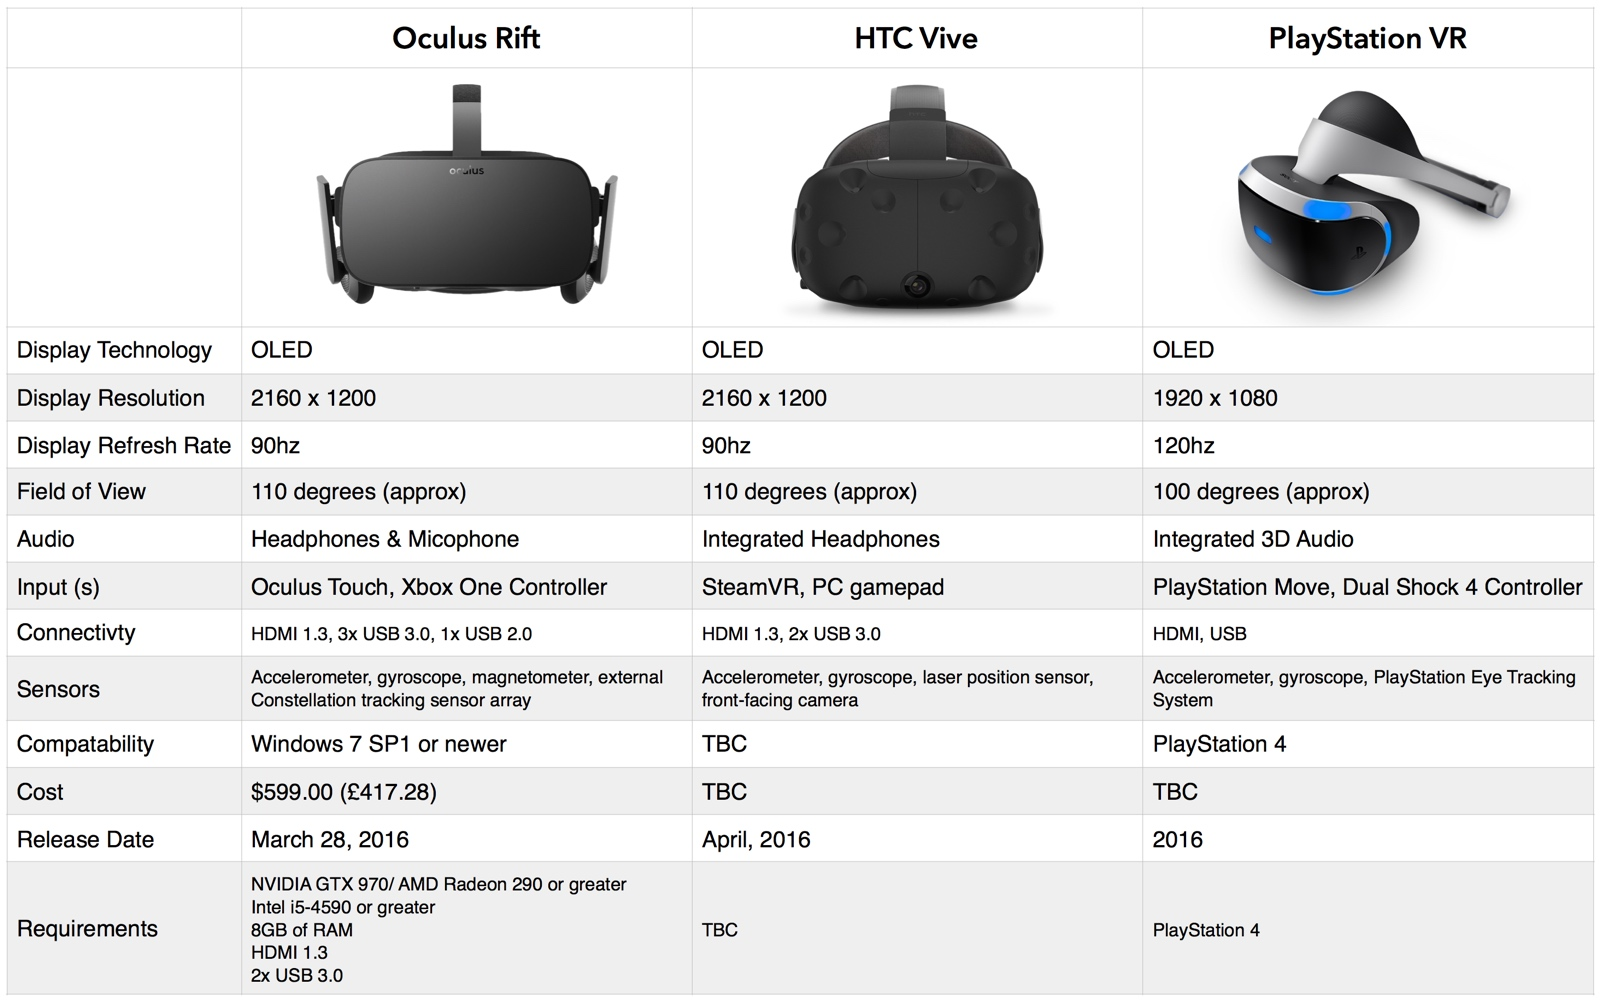 Htc Vive System Requirements >> Vr Roundup Rift Vs Vive Vs Playstation Vr